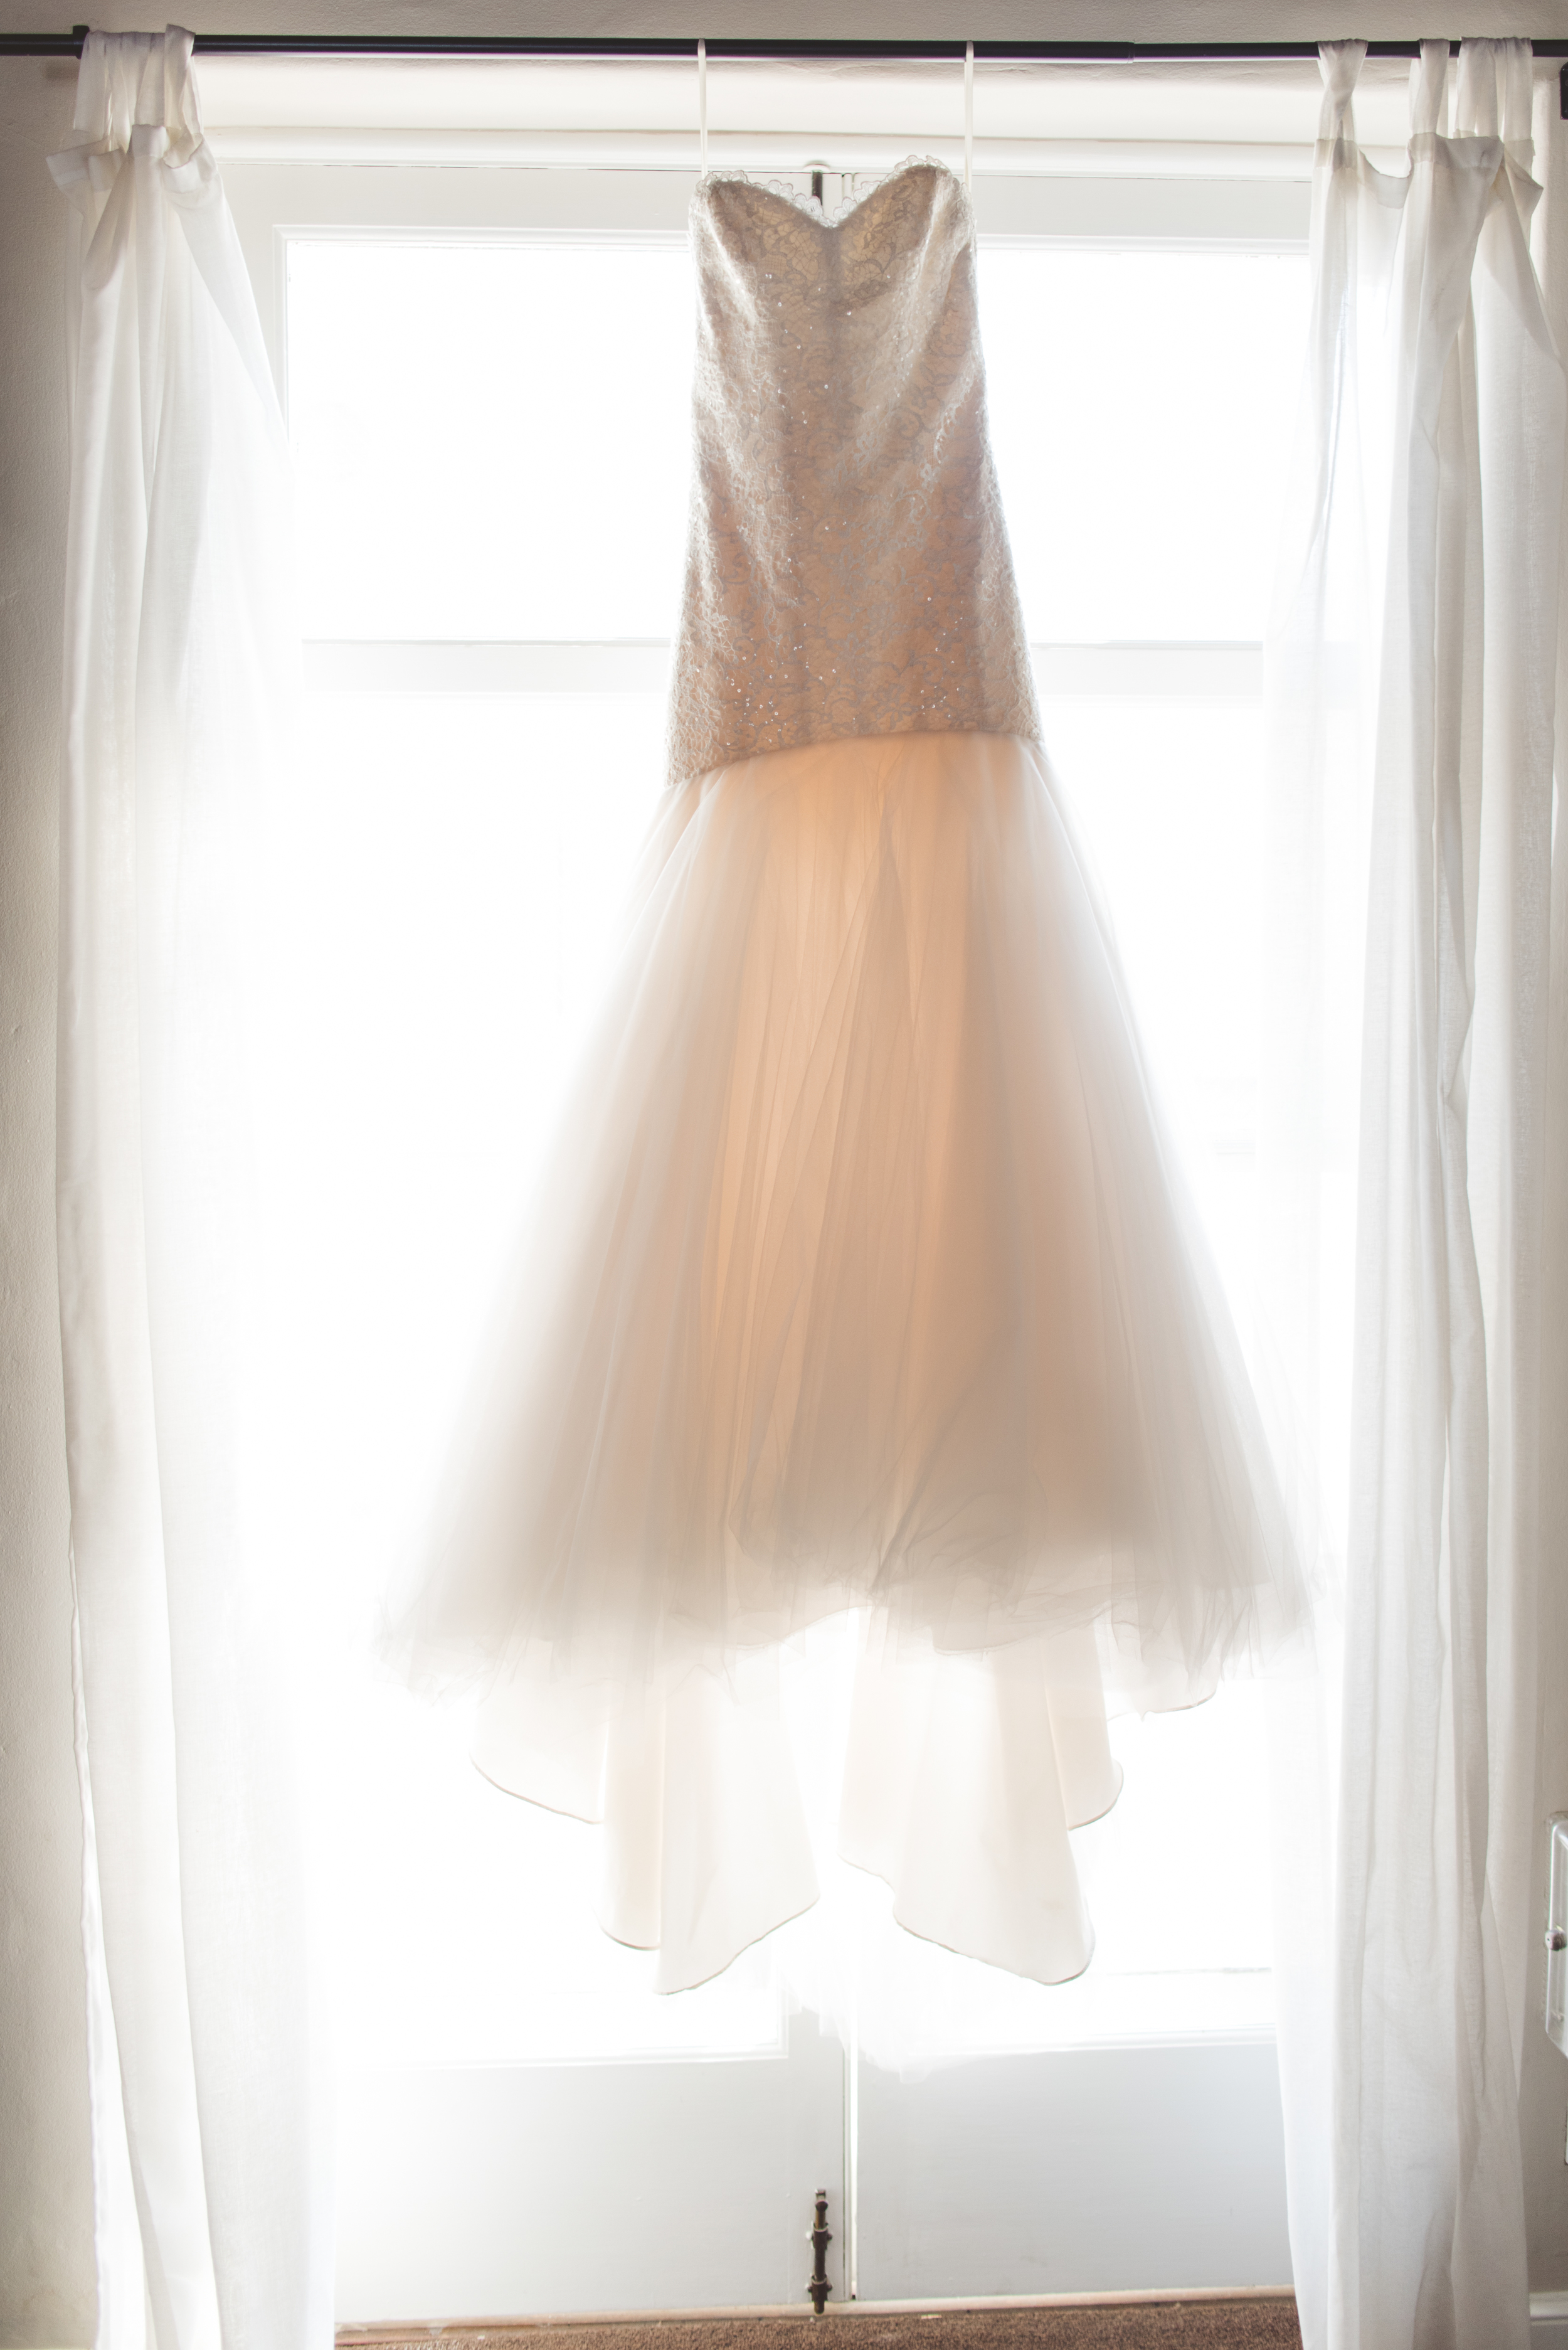 Fiorella + Patrick - Details - Hitched Photo (1 of 55).jpg